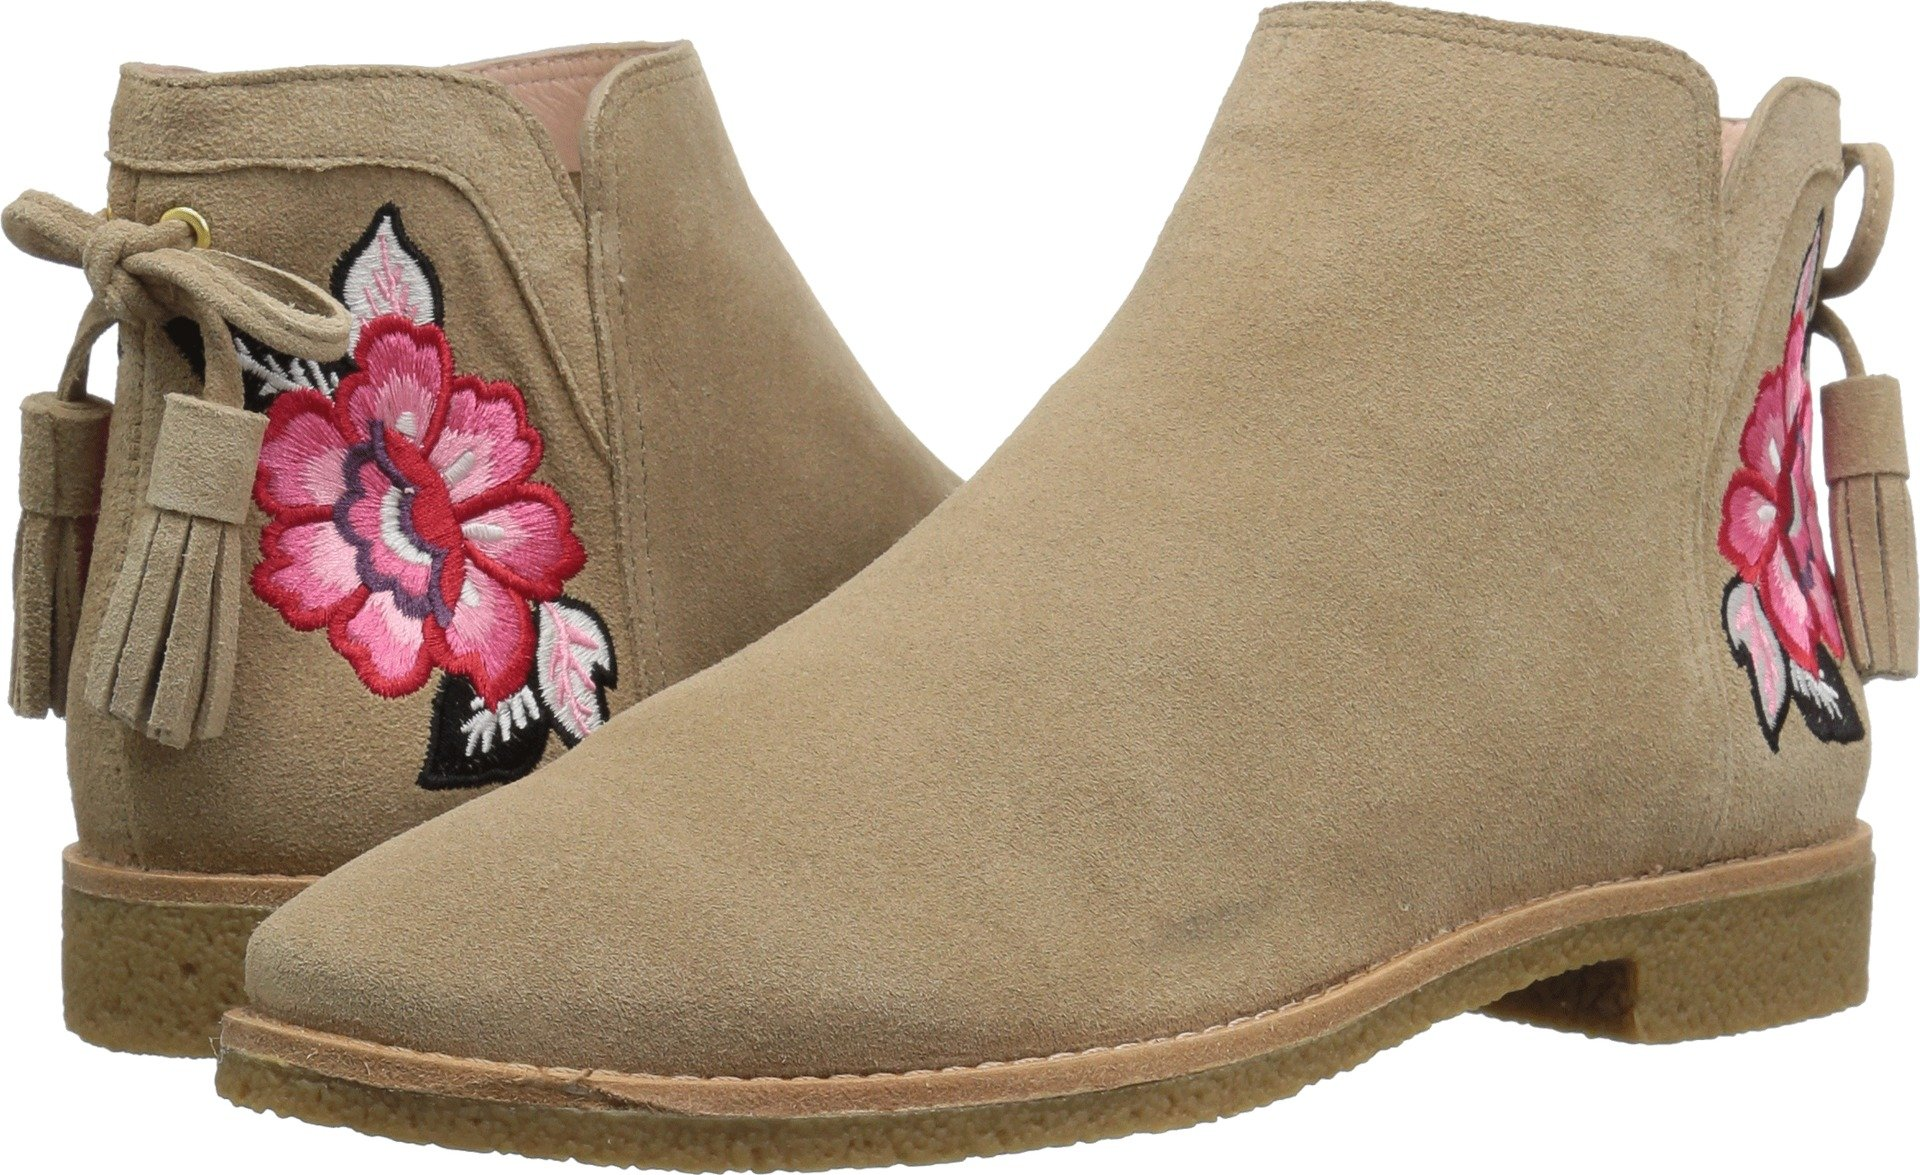 Kate Spade New York Women's Bellville Ankle Boot, Beige, 10 Medium US